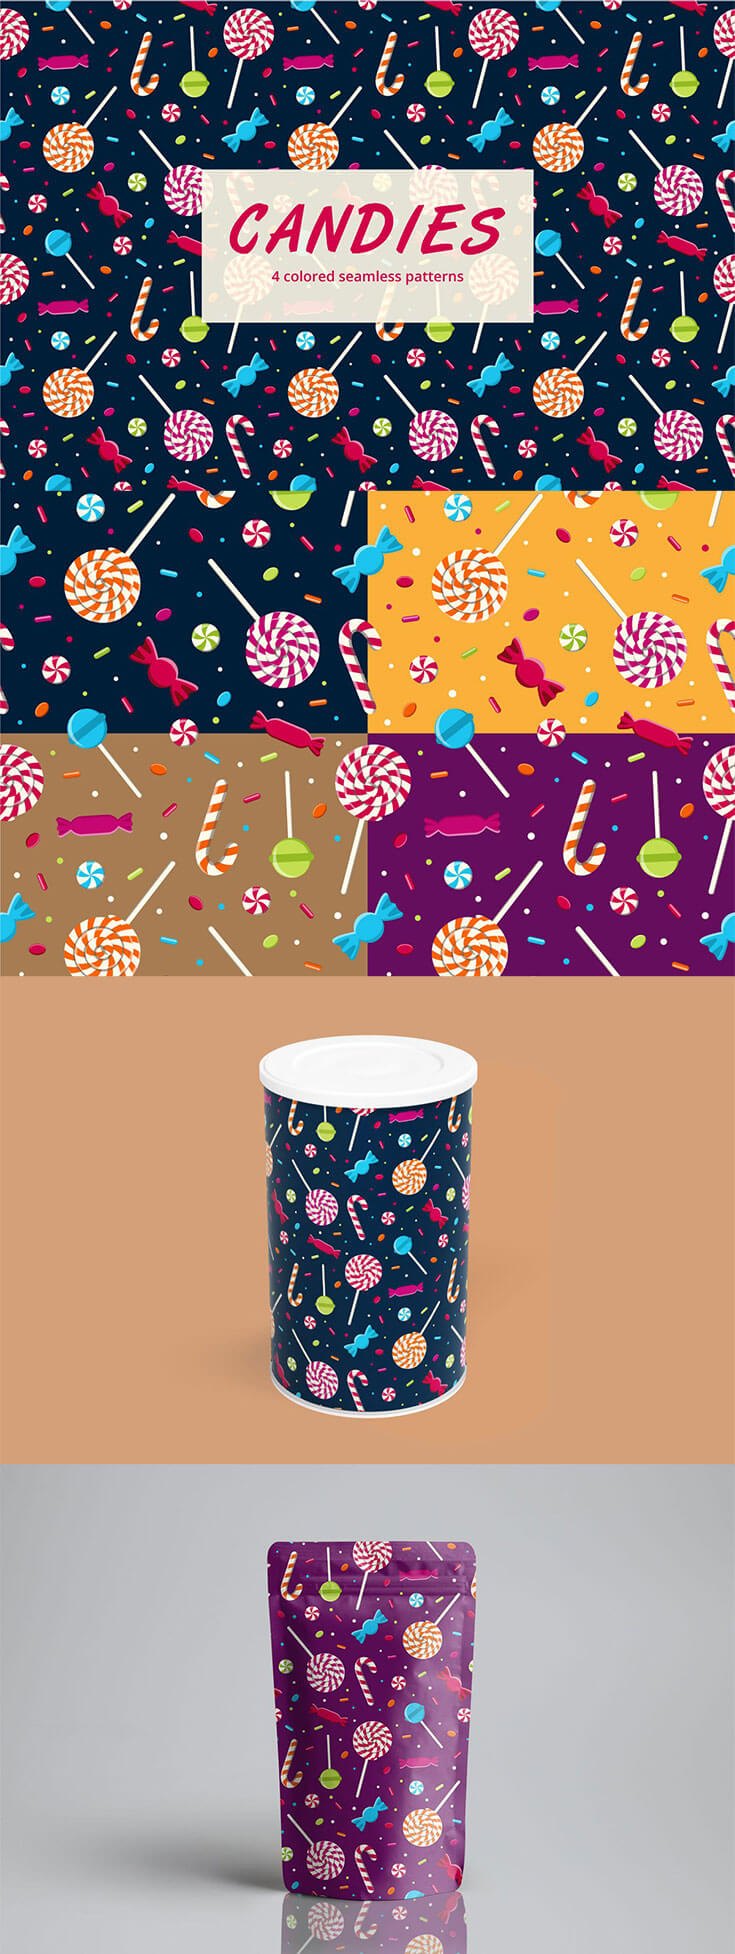 Free #Candy Vector #Seamless #Pattern is a thematic graphic for designers. You can create many interesting designs of things. It can be packing goods, gift bags, beach bags, smartphone covers and much more. All graphics are vector. You can easily change the size of the pattern without losing quality.You can use these free for both personal and commercial purposes.